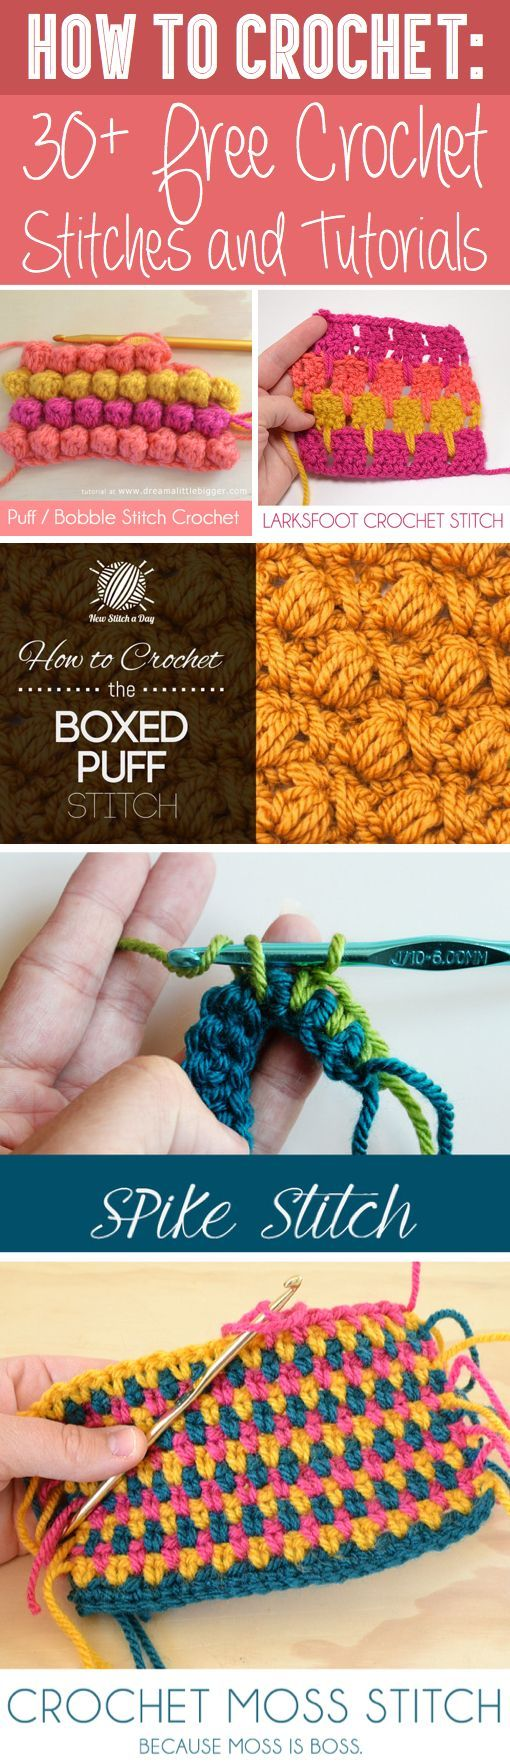 Although I have shared another crochet tutorial here, I thought to share this one because it uses colorful yarn which takes anyone's eyes. And it includes 30+ crochet stitches and tutorials which will be very helpful for a beginner crocheter to test o new stitches. This collection of crochet tutorials is shared by CuteDIYProjects and ...